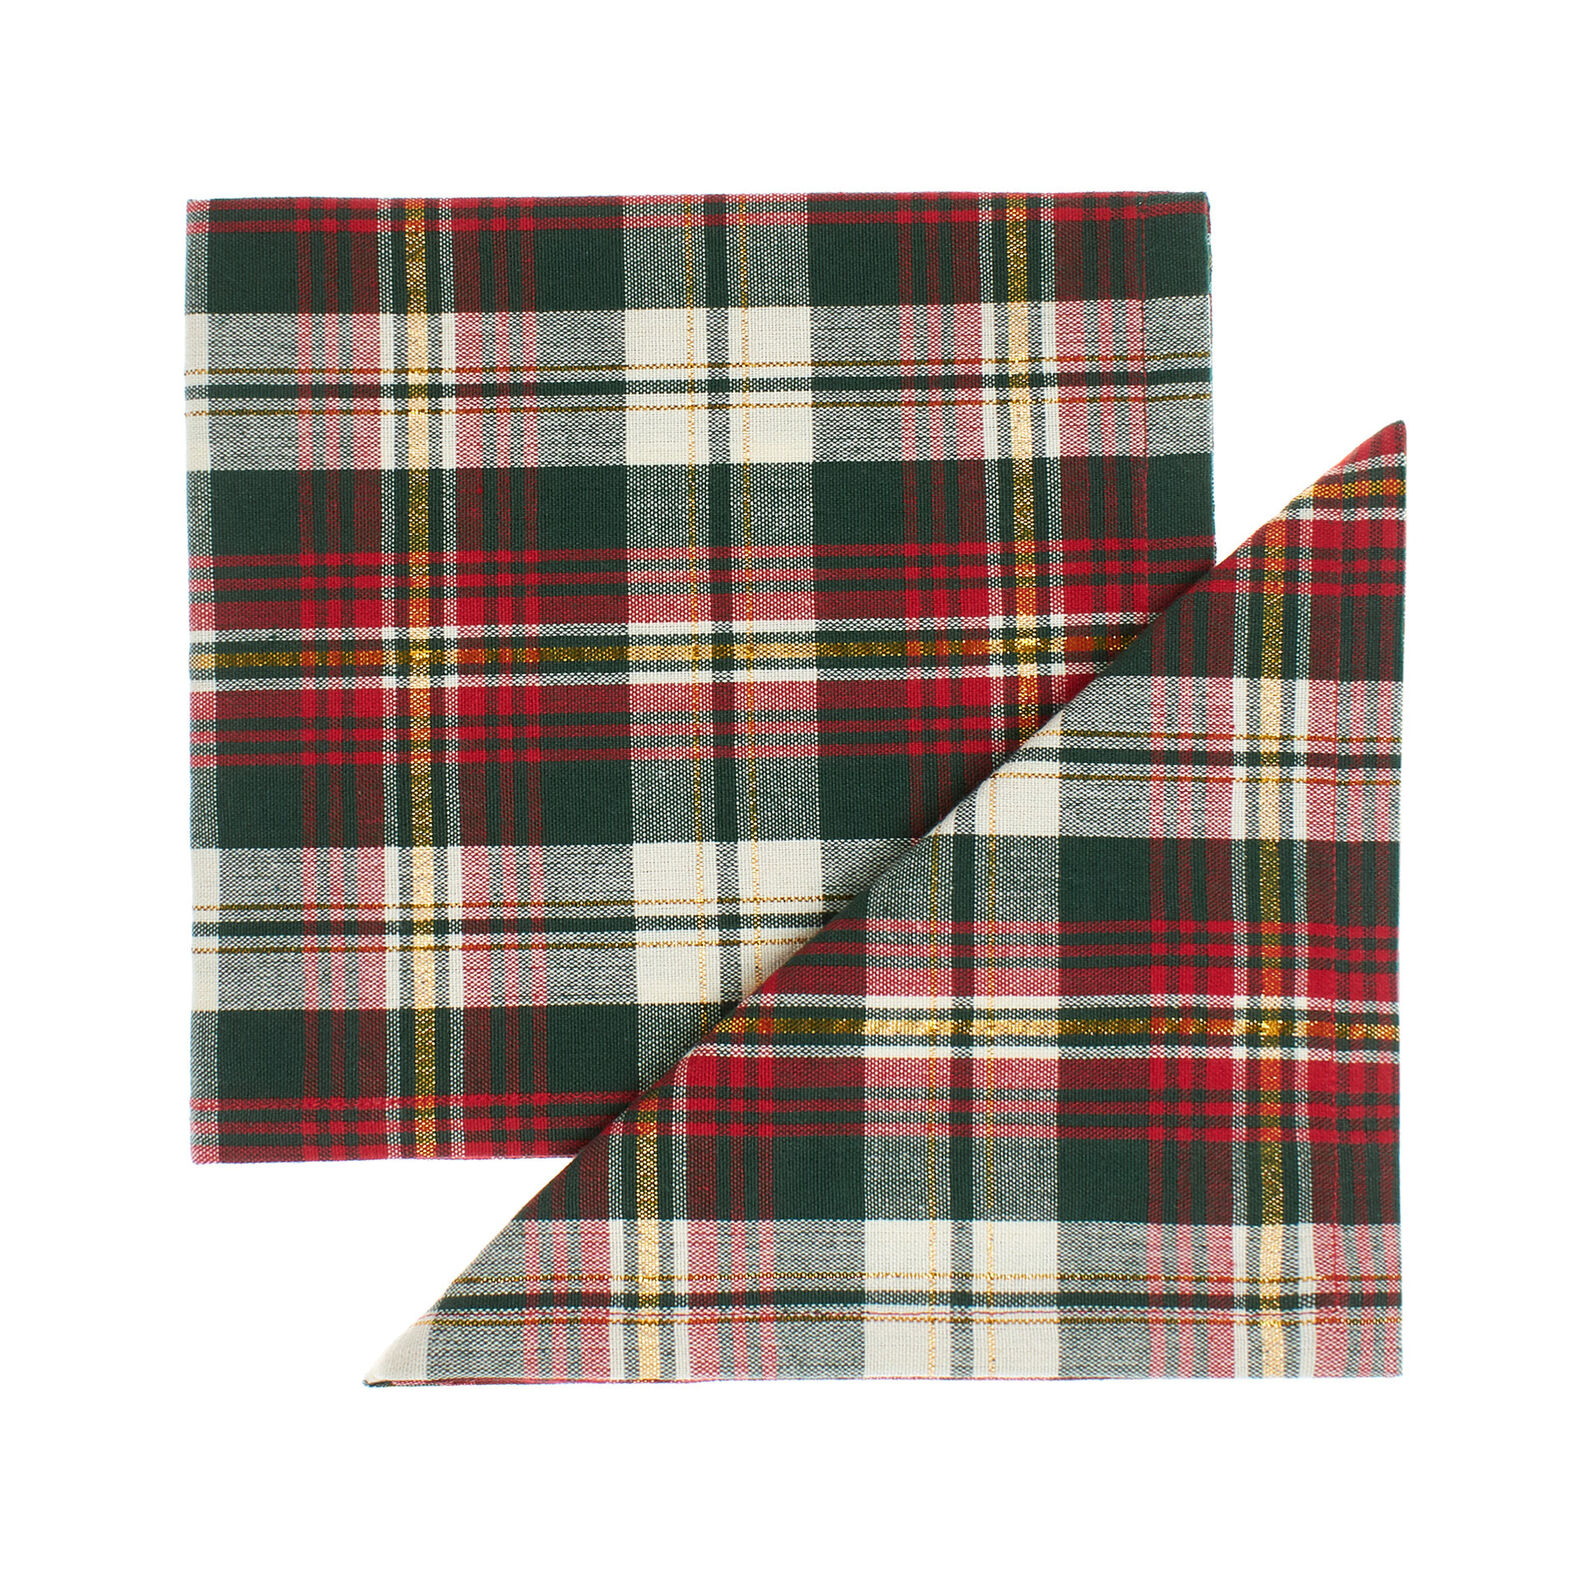 Set of 2 napkins in pure cotton tartan and lurex